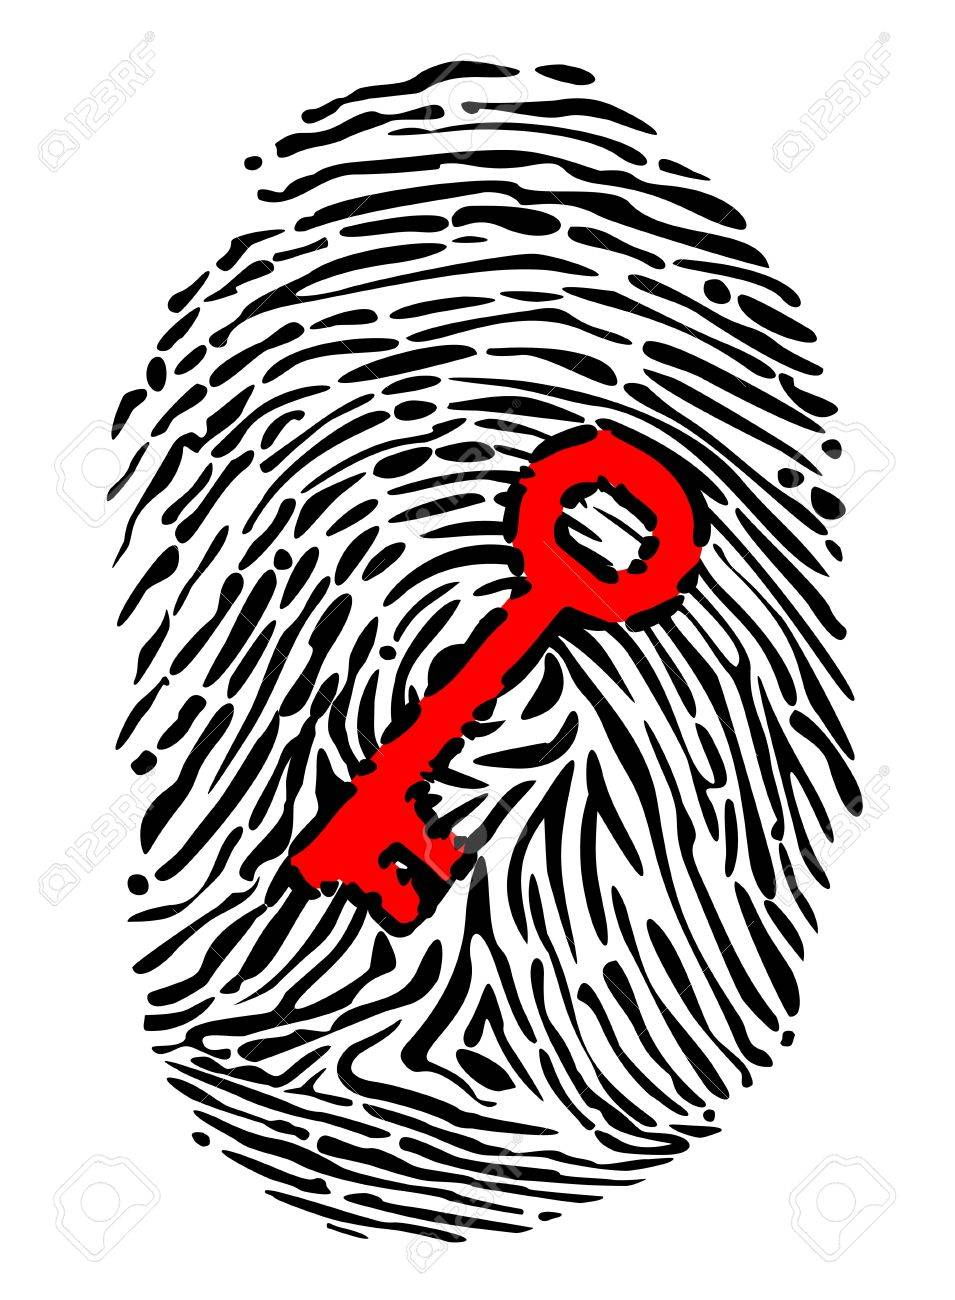 Fingerprint and key for security or identity system concept design Stock Vector - 18538841